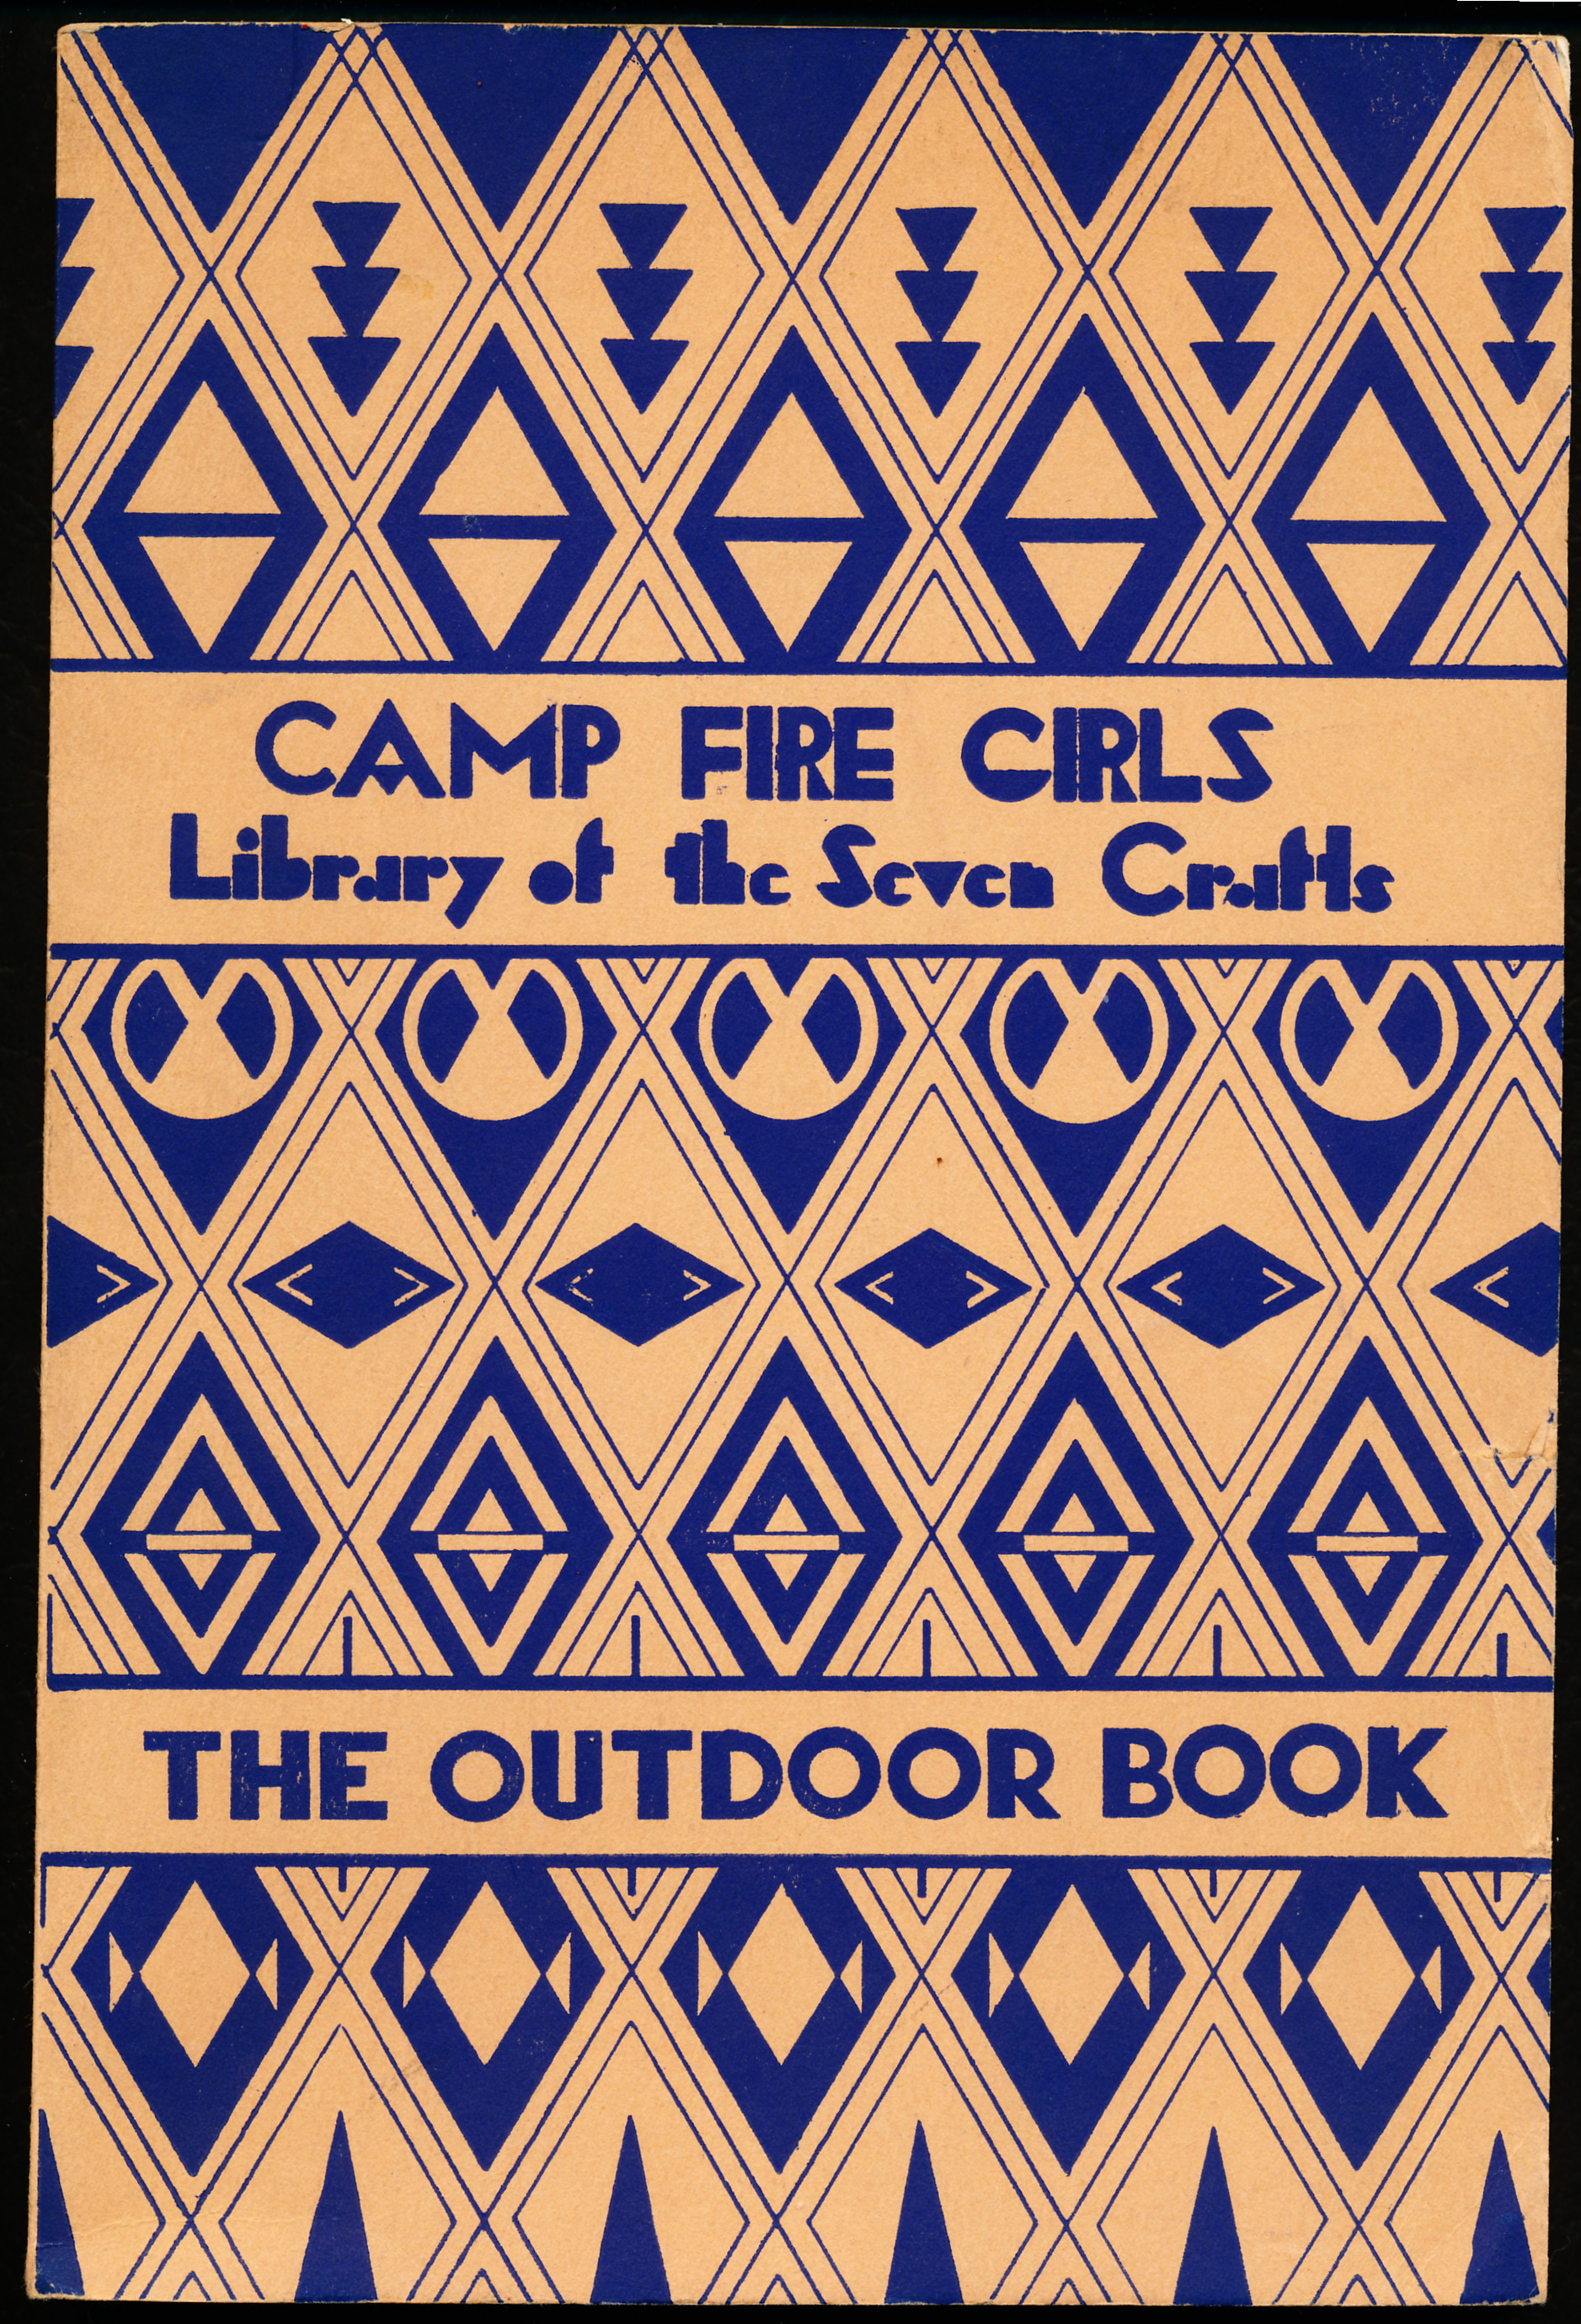 Image for THE OUTDOOR BOOK. Book Number Eight of the Library of the Seven Crafts of the Camp Fire Girls.